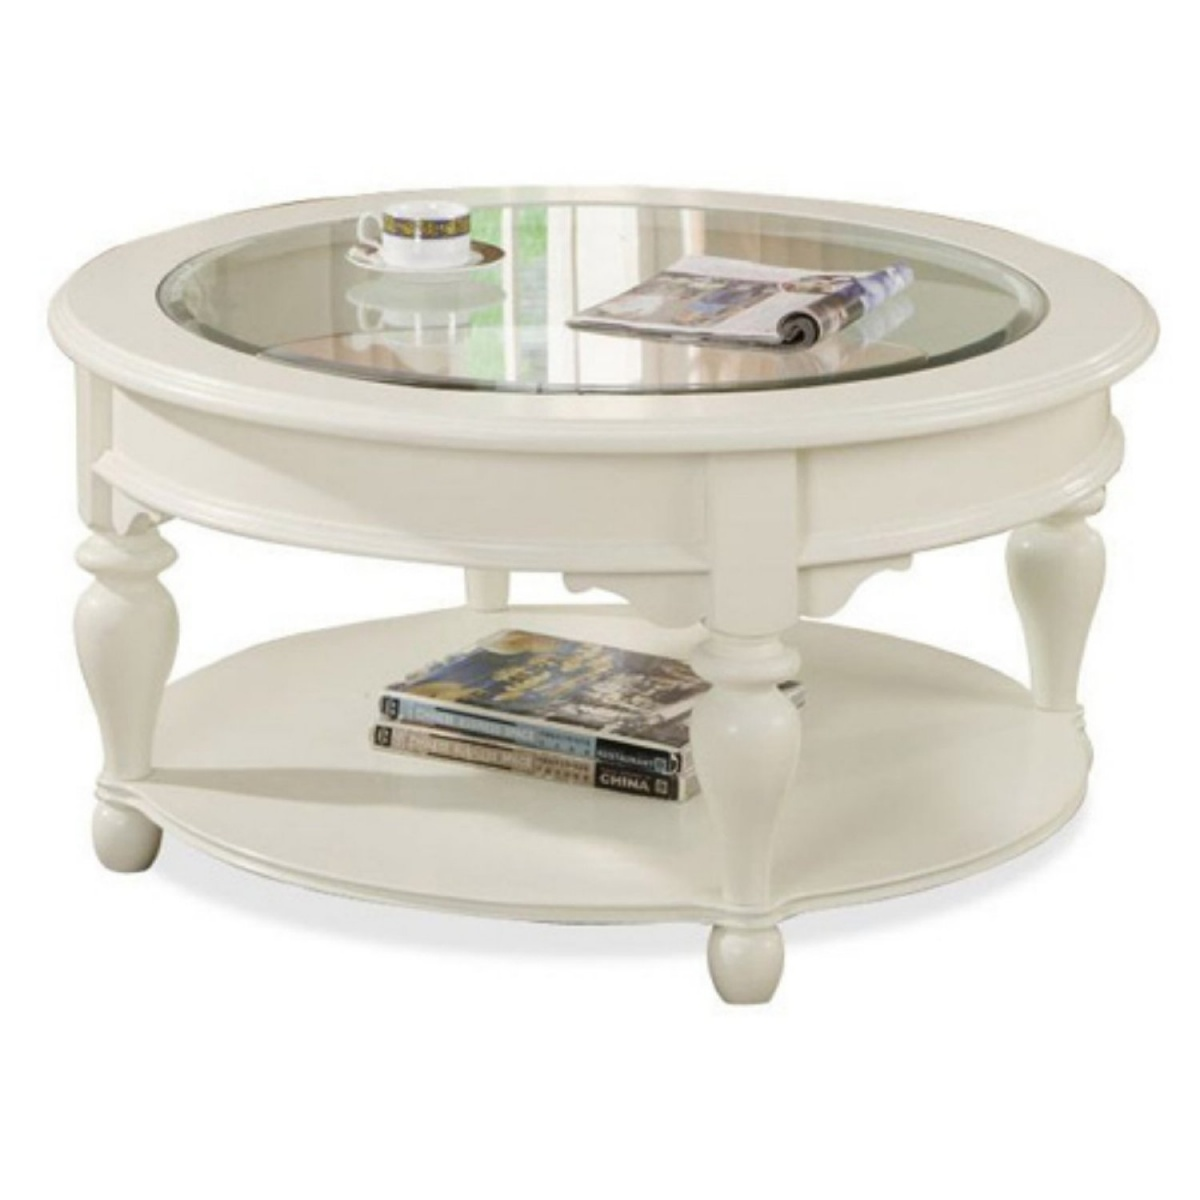 Round White Coffee Table White Coffee Tables And End Tables Coffee Tables And End Tables Round White Coffee Tables (Image 4 of 10)